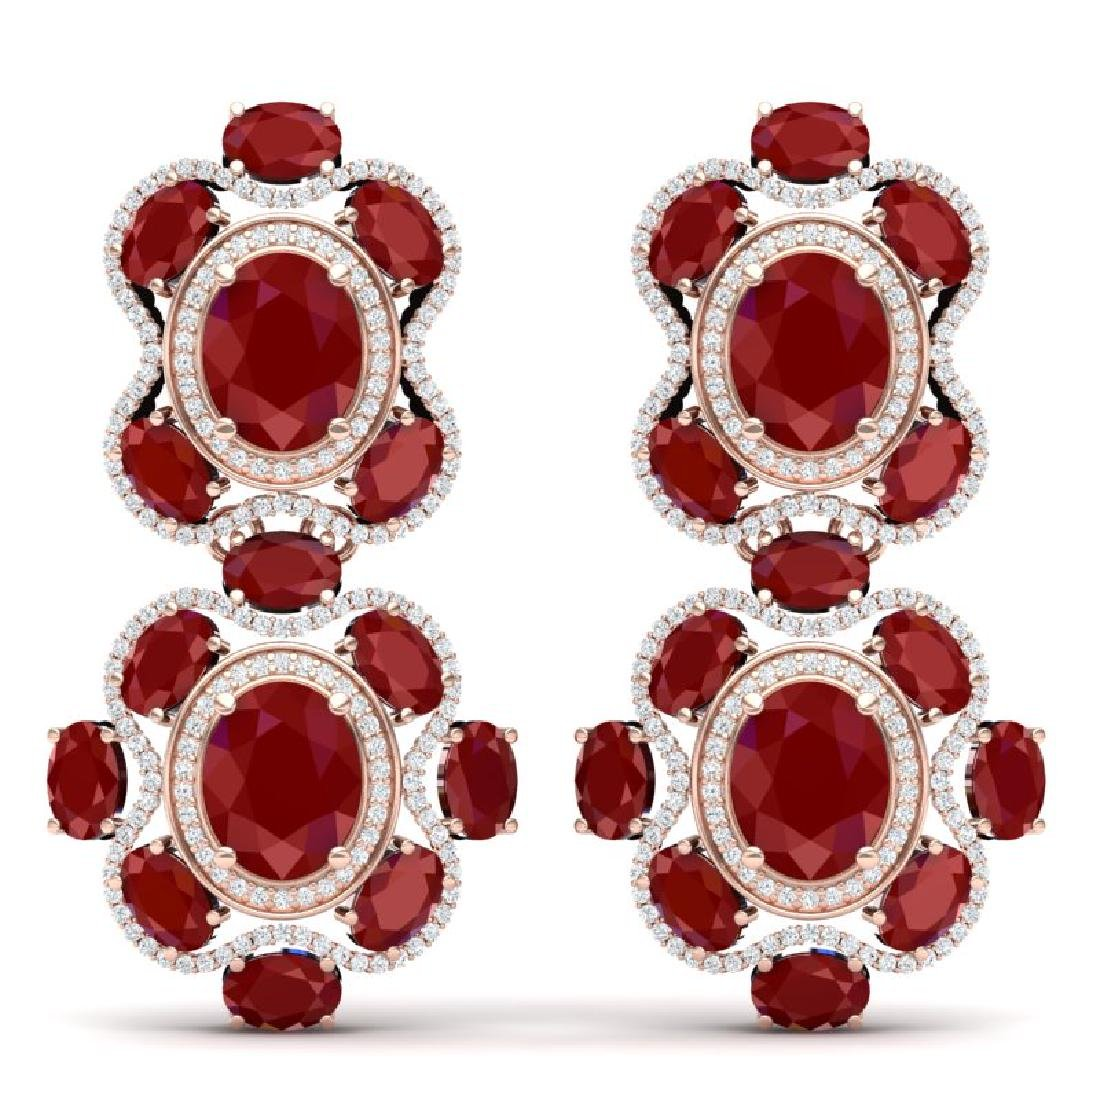 33.5 CTW Royalty Designer Ruby & VS Diamond Earrings